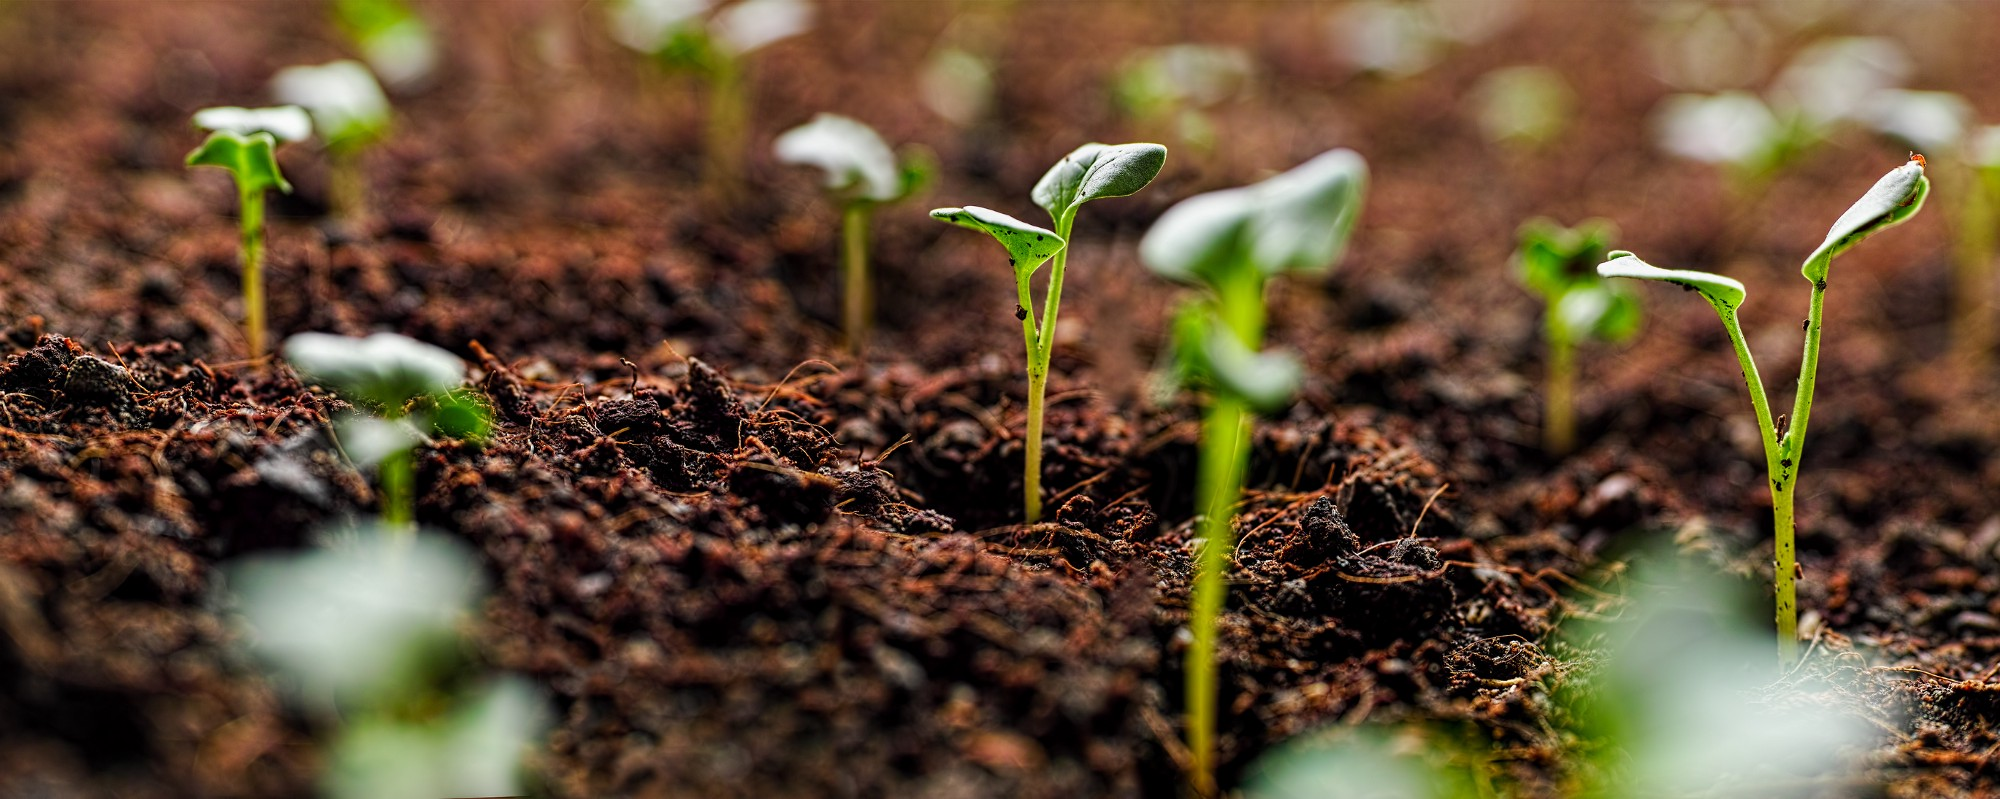 Healthy food starts with healthy soil nestle usa medium for Soil our life